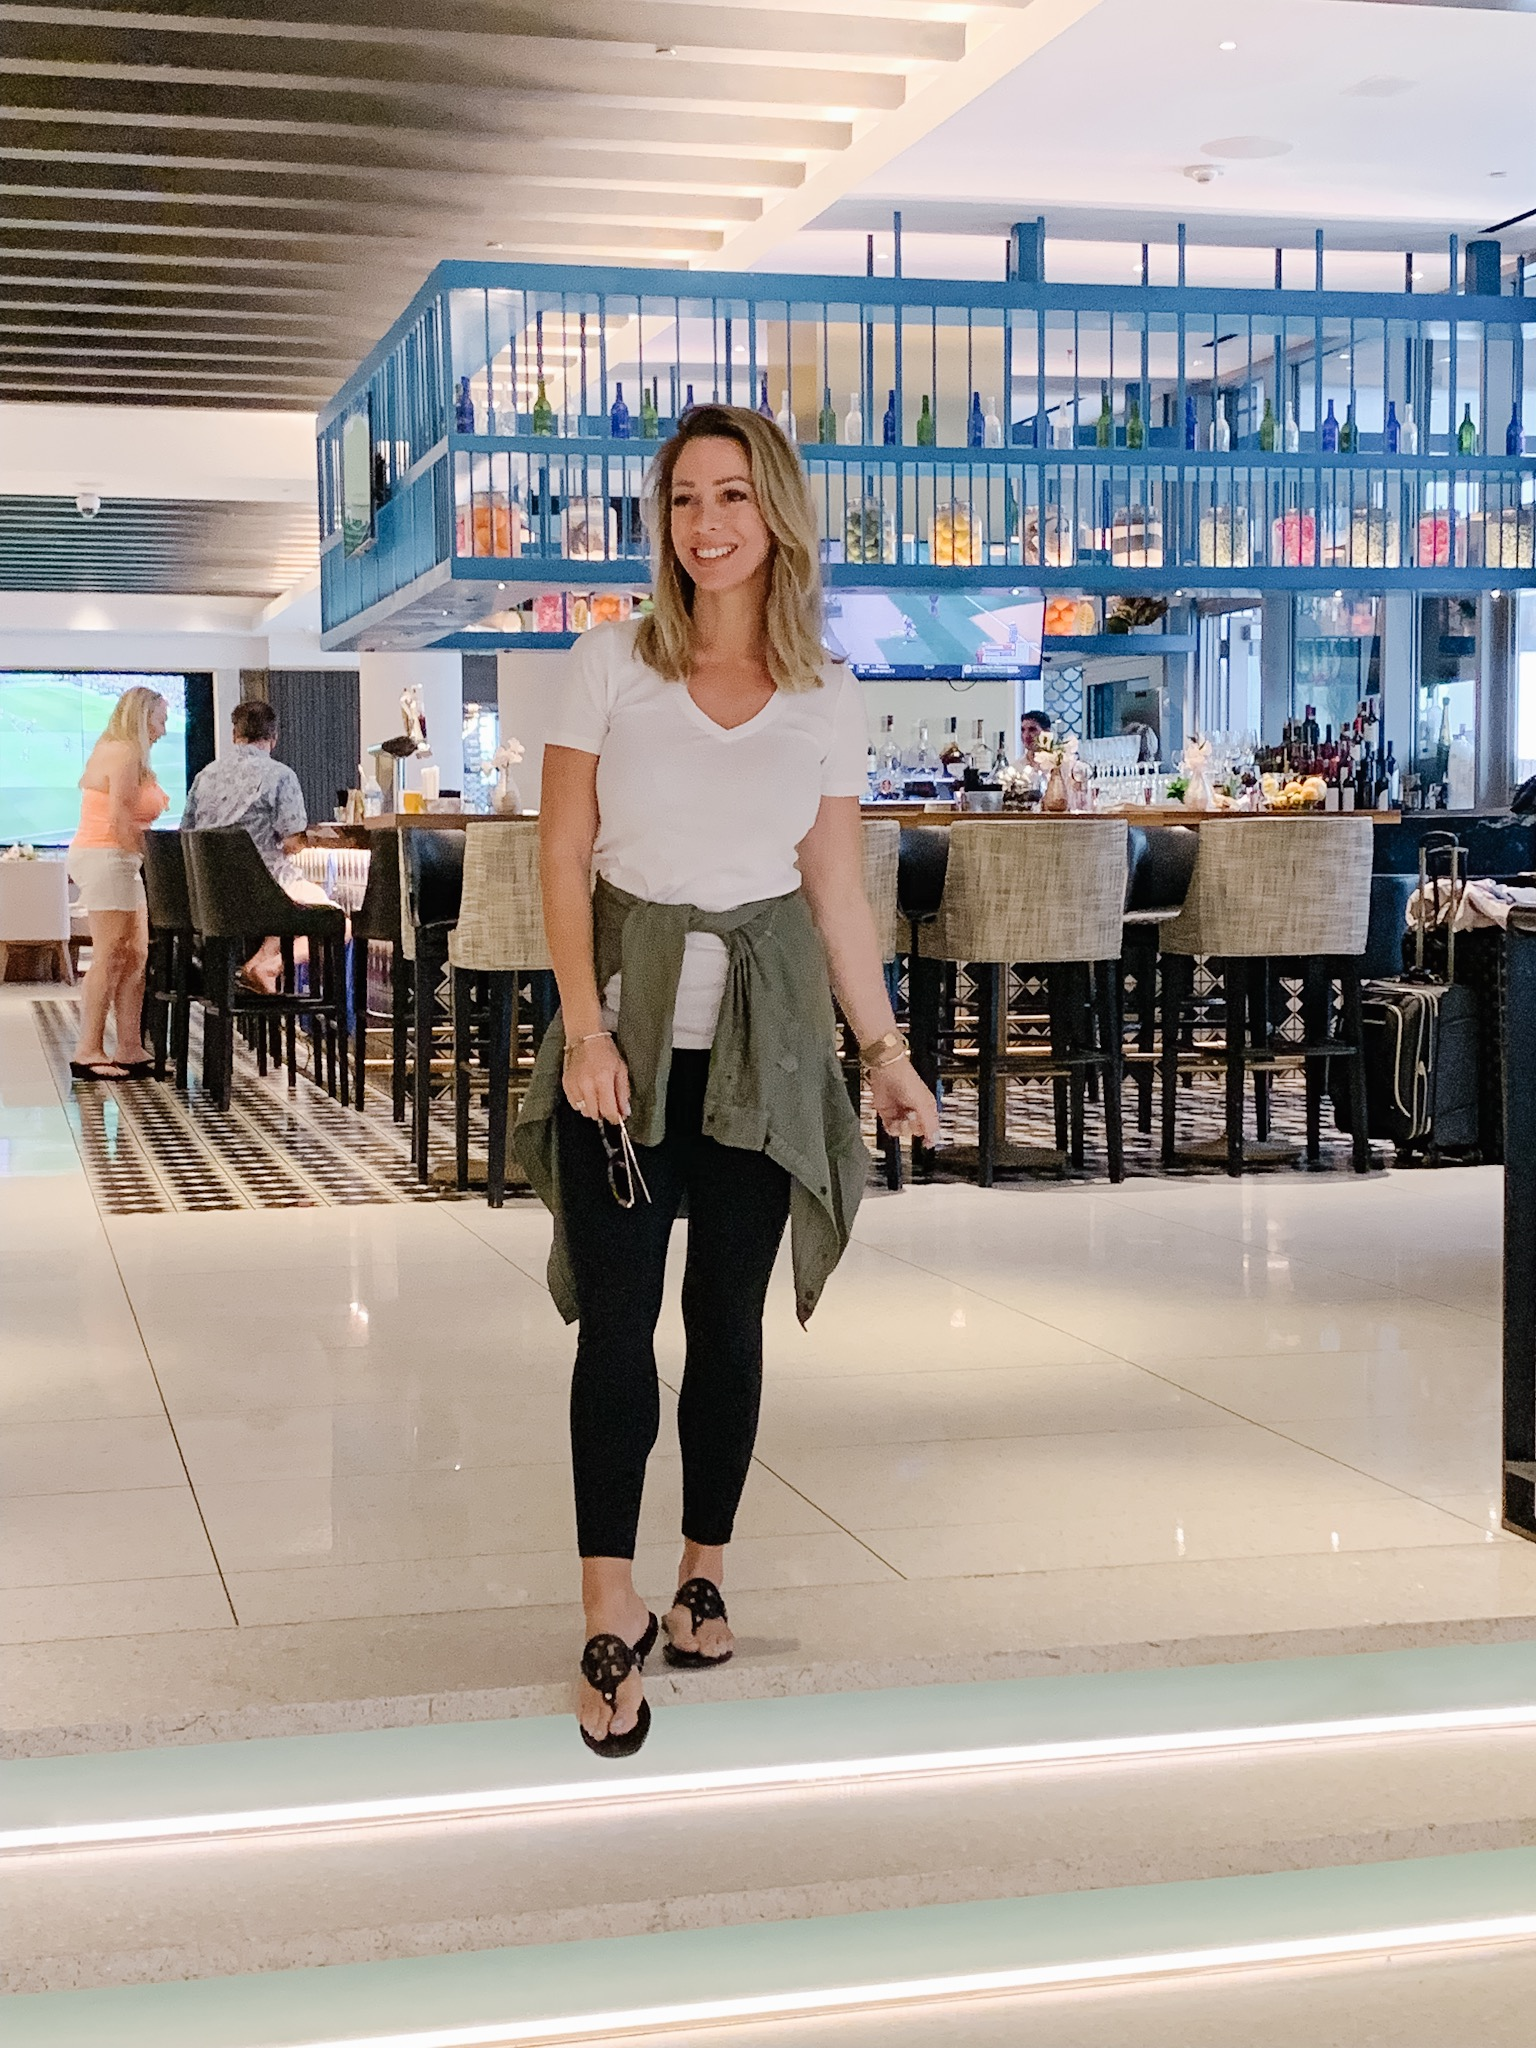 Comfy travel outfit - leggings, tee and sandals